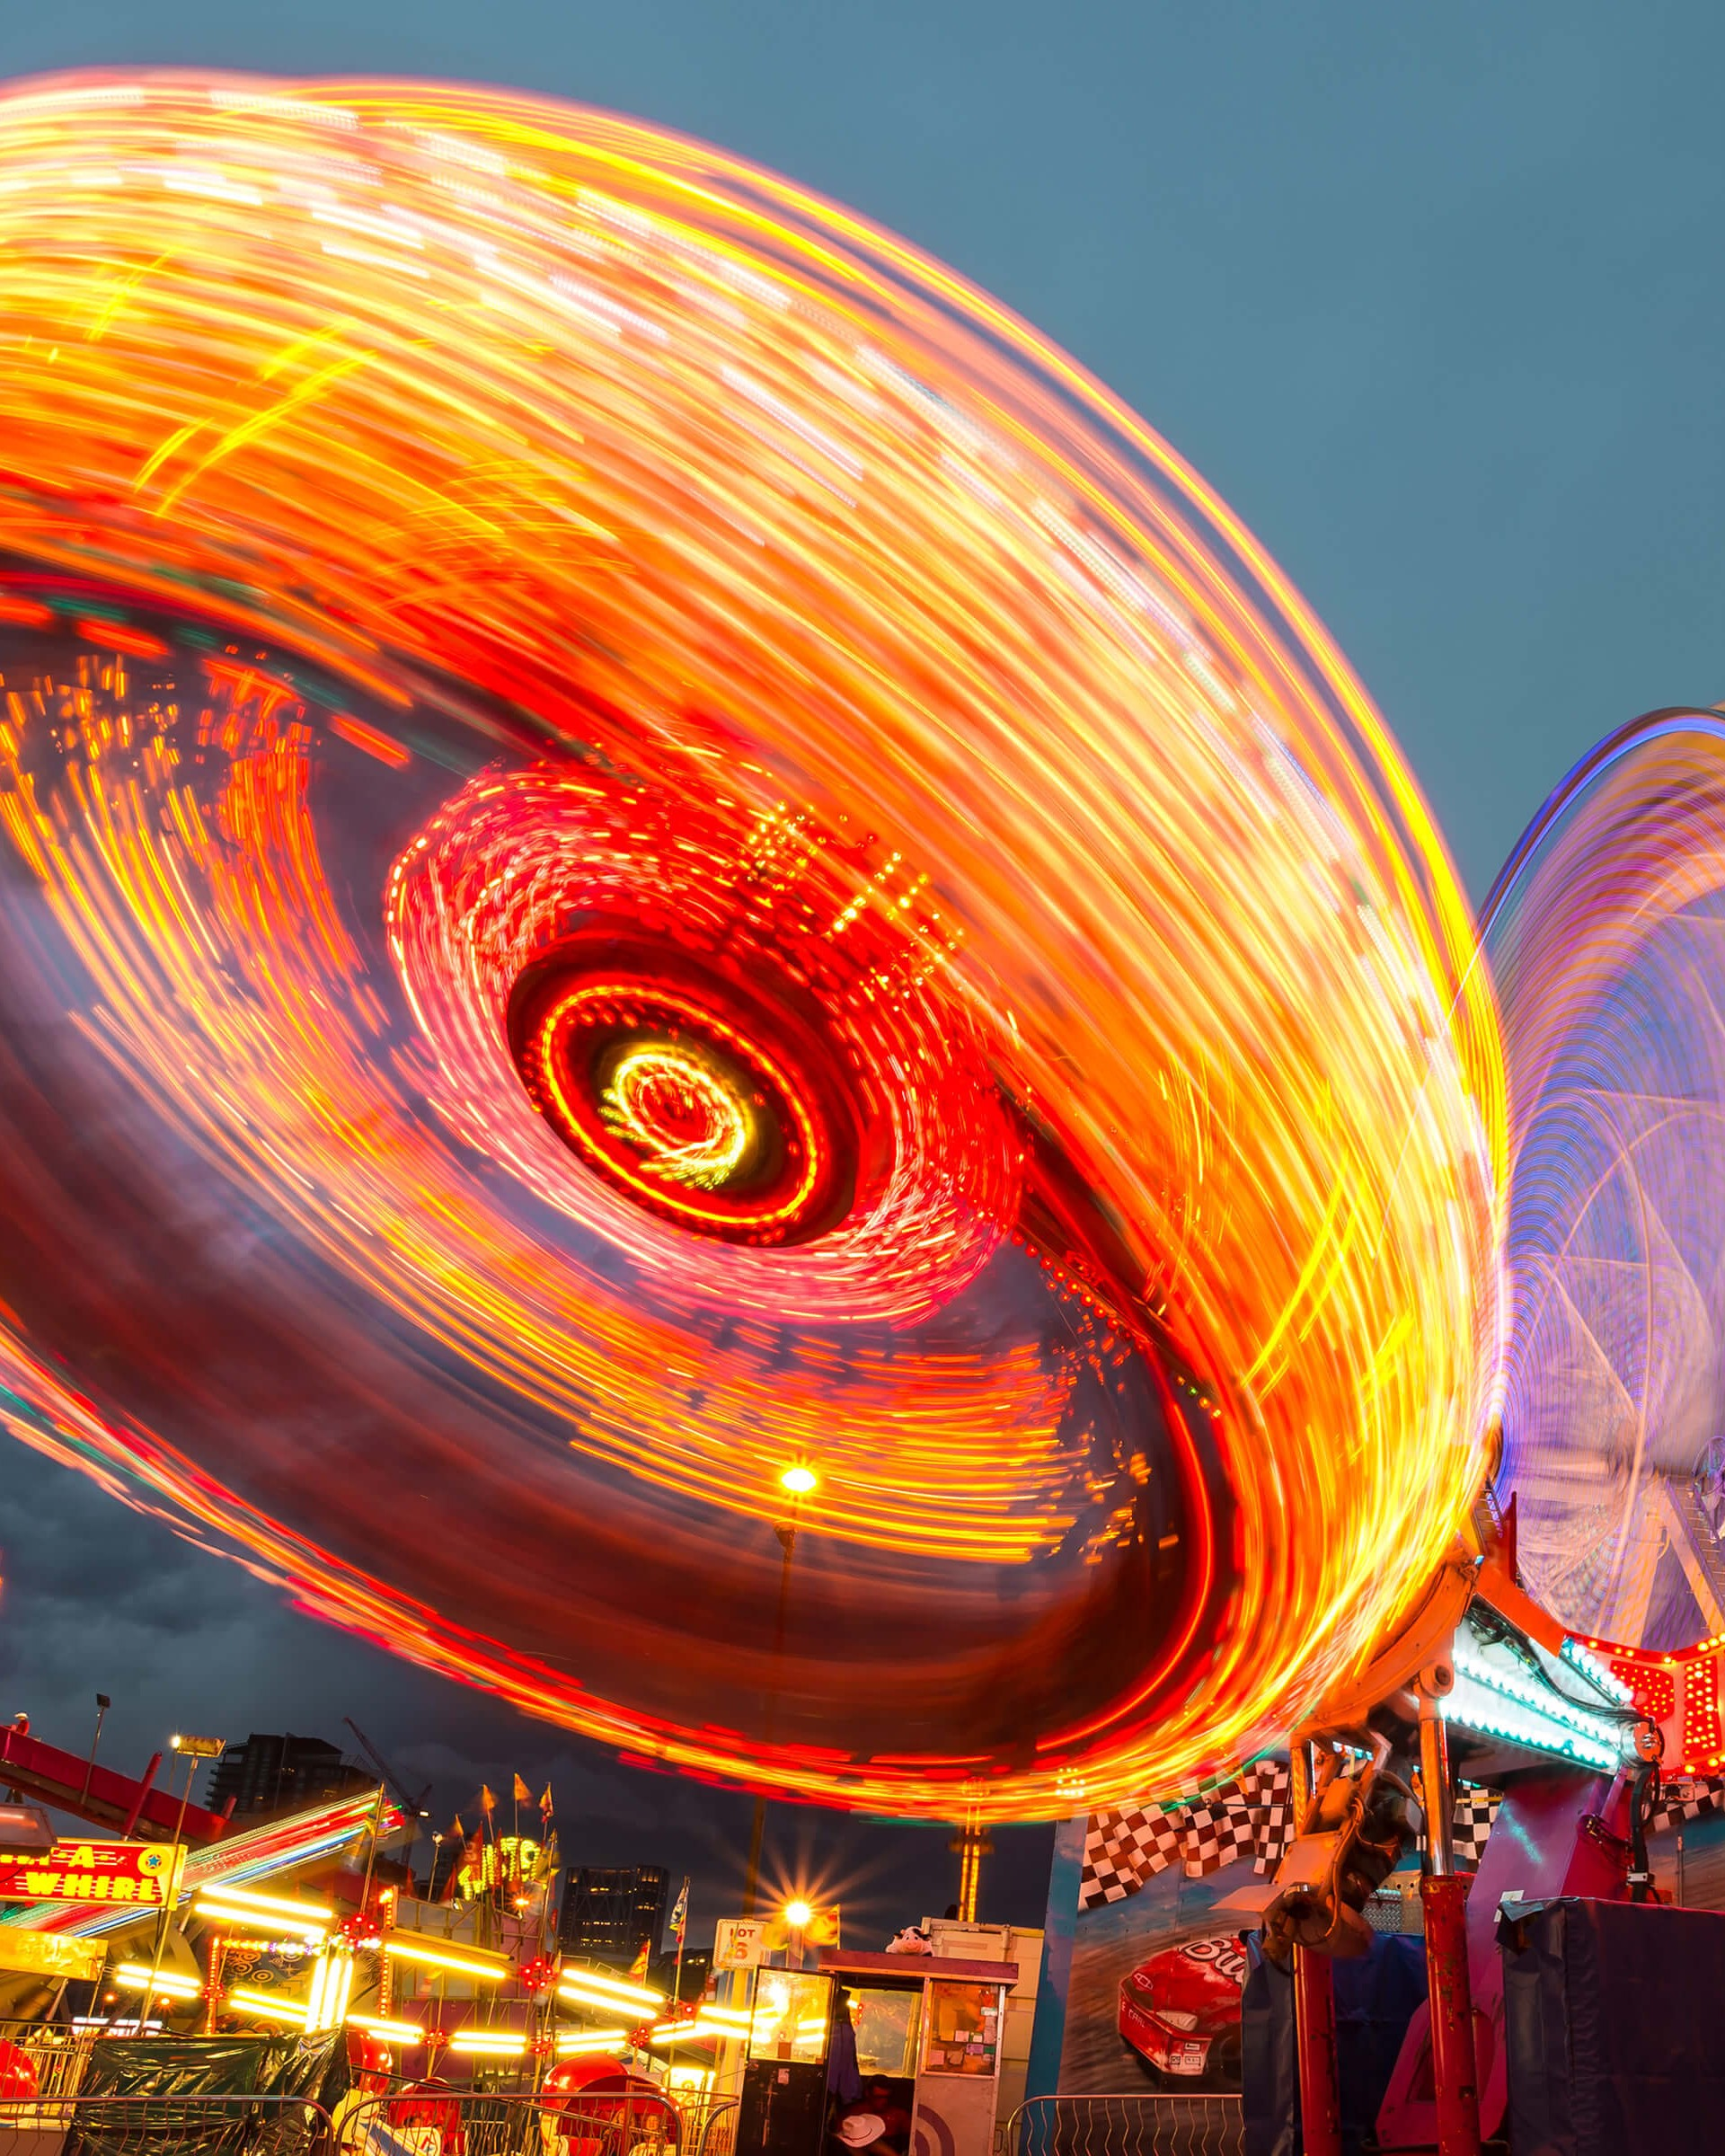 Calgary Stampede Lights HD wallpaper for Nexus 7   HDwallpapersnet 1920x2400